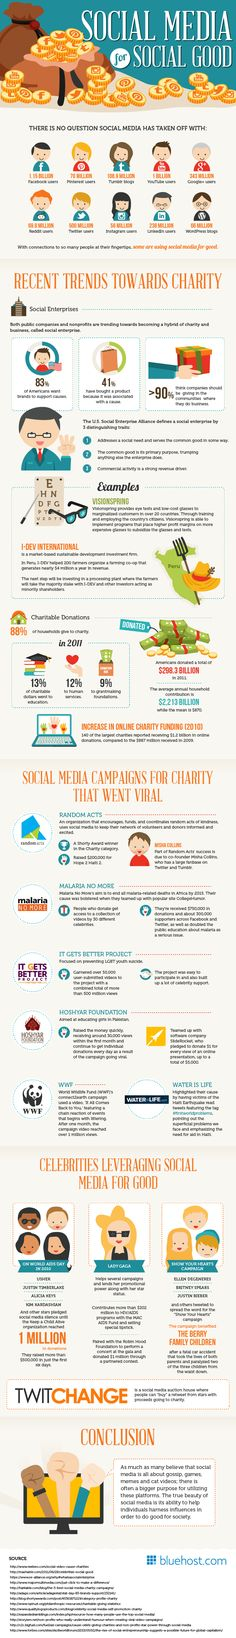 Social Media For Social Good - #SocialMedia #Infographic